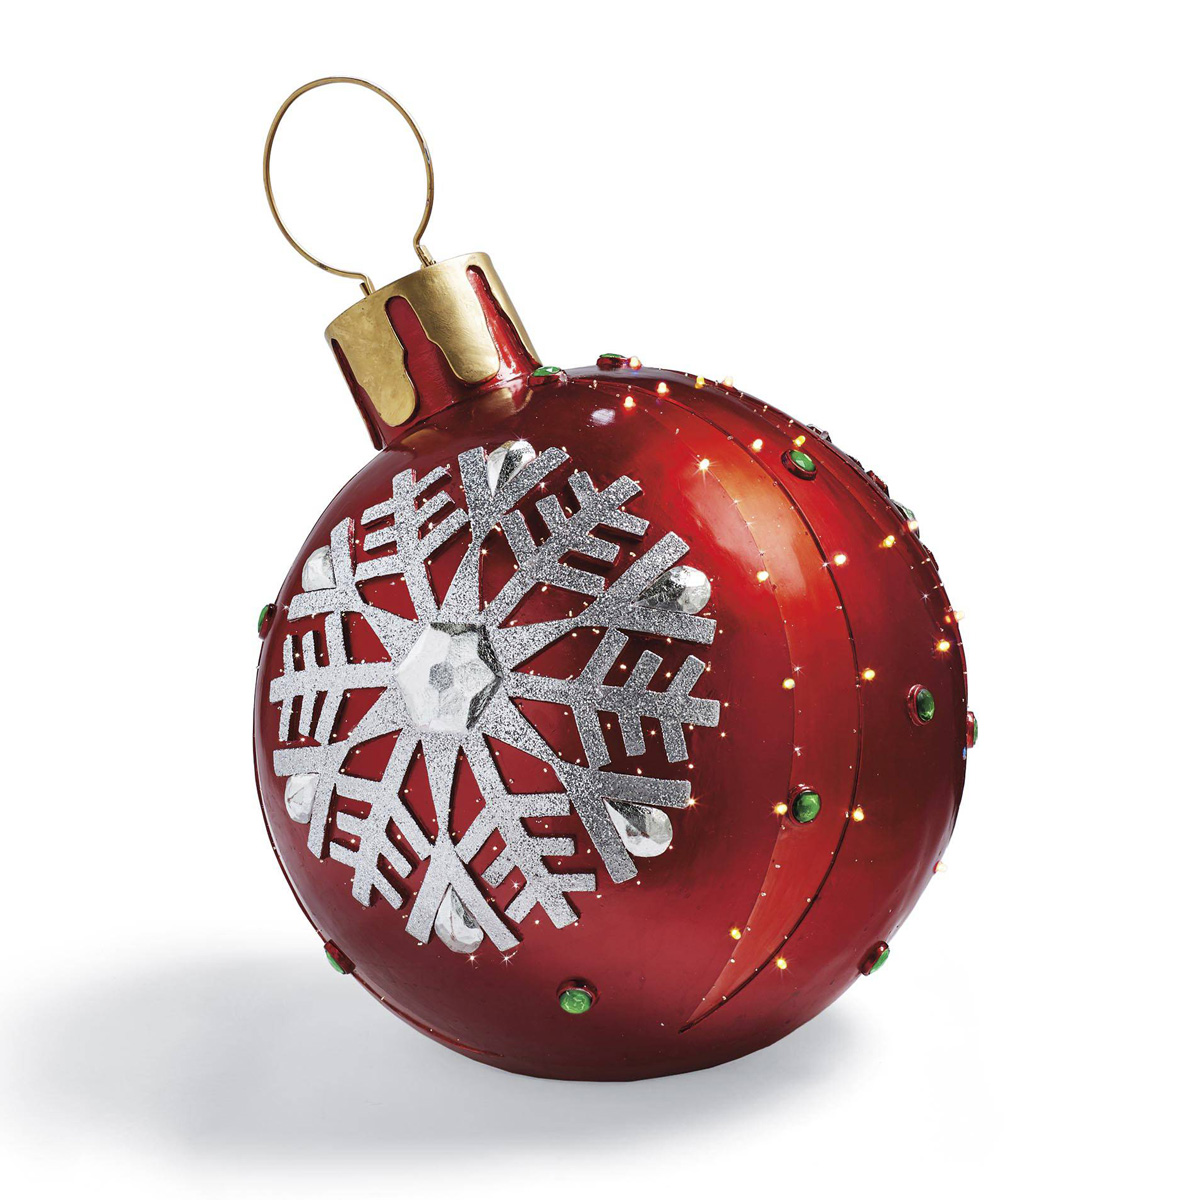 Massive Fiber Optic Led Outdoor Christmas Ornaments The